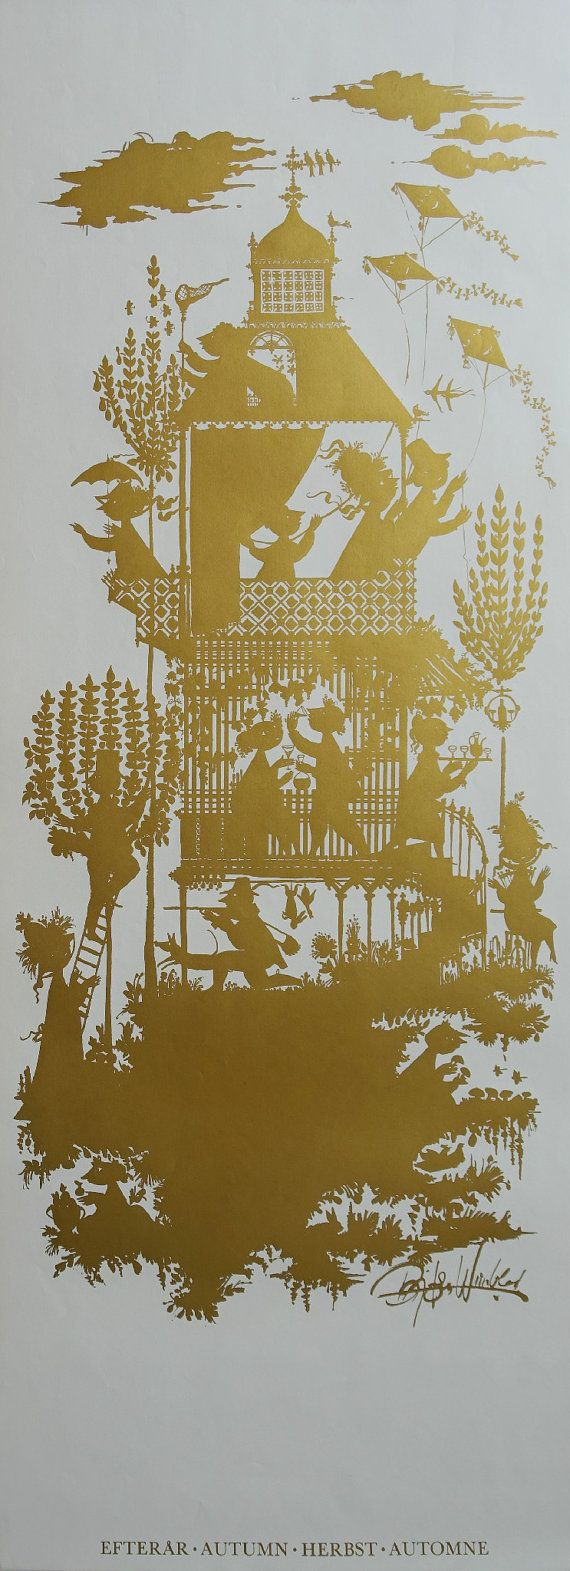 "1960s Bjørn Wiinblad ""Autumn"" (Golden edition) - Original Vintage Poster"